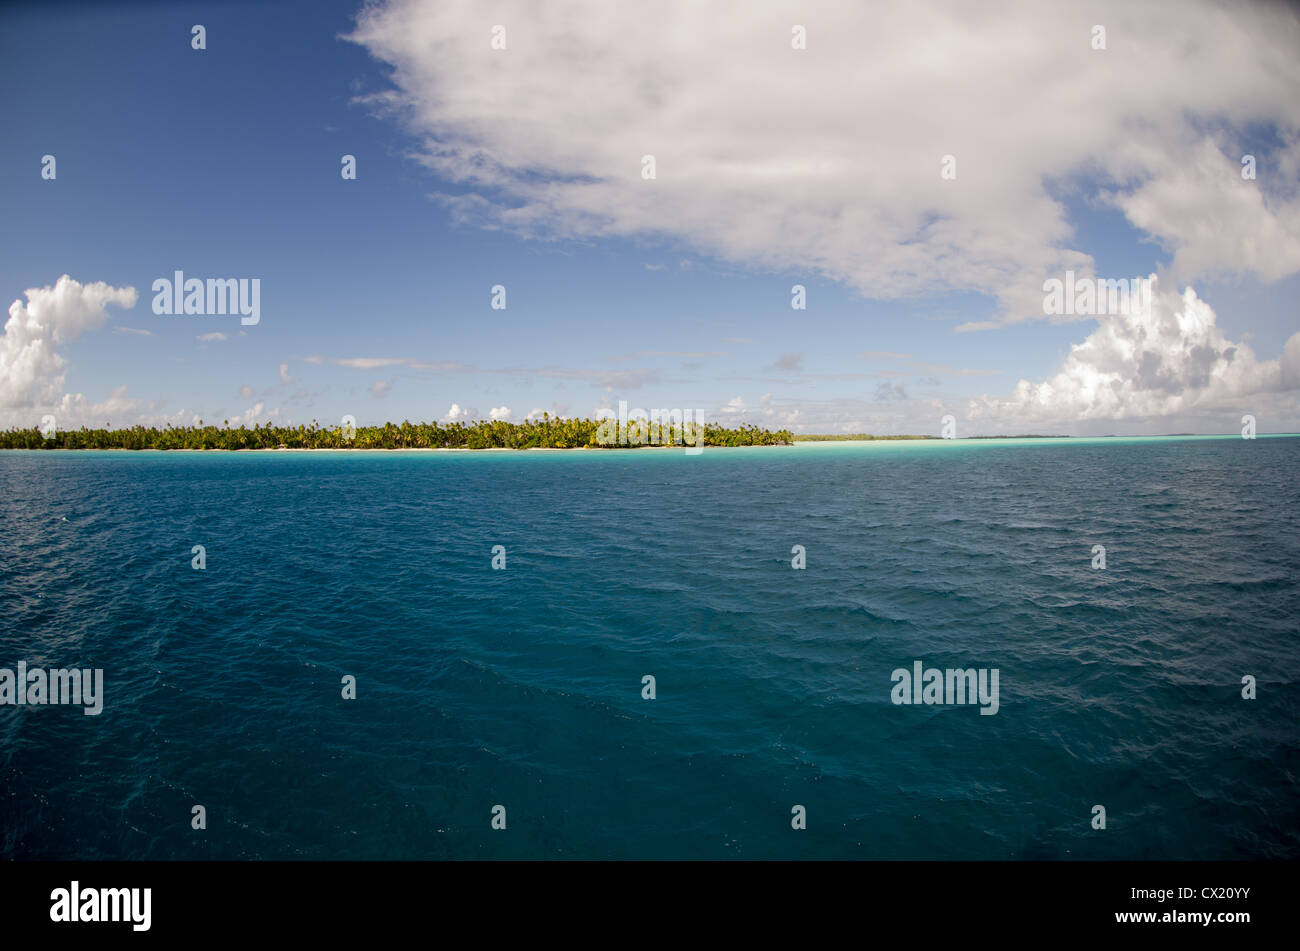 The motu Toau located in the Tuamotu's in French Polynesia - Stock Image